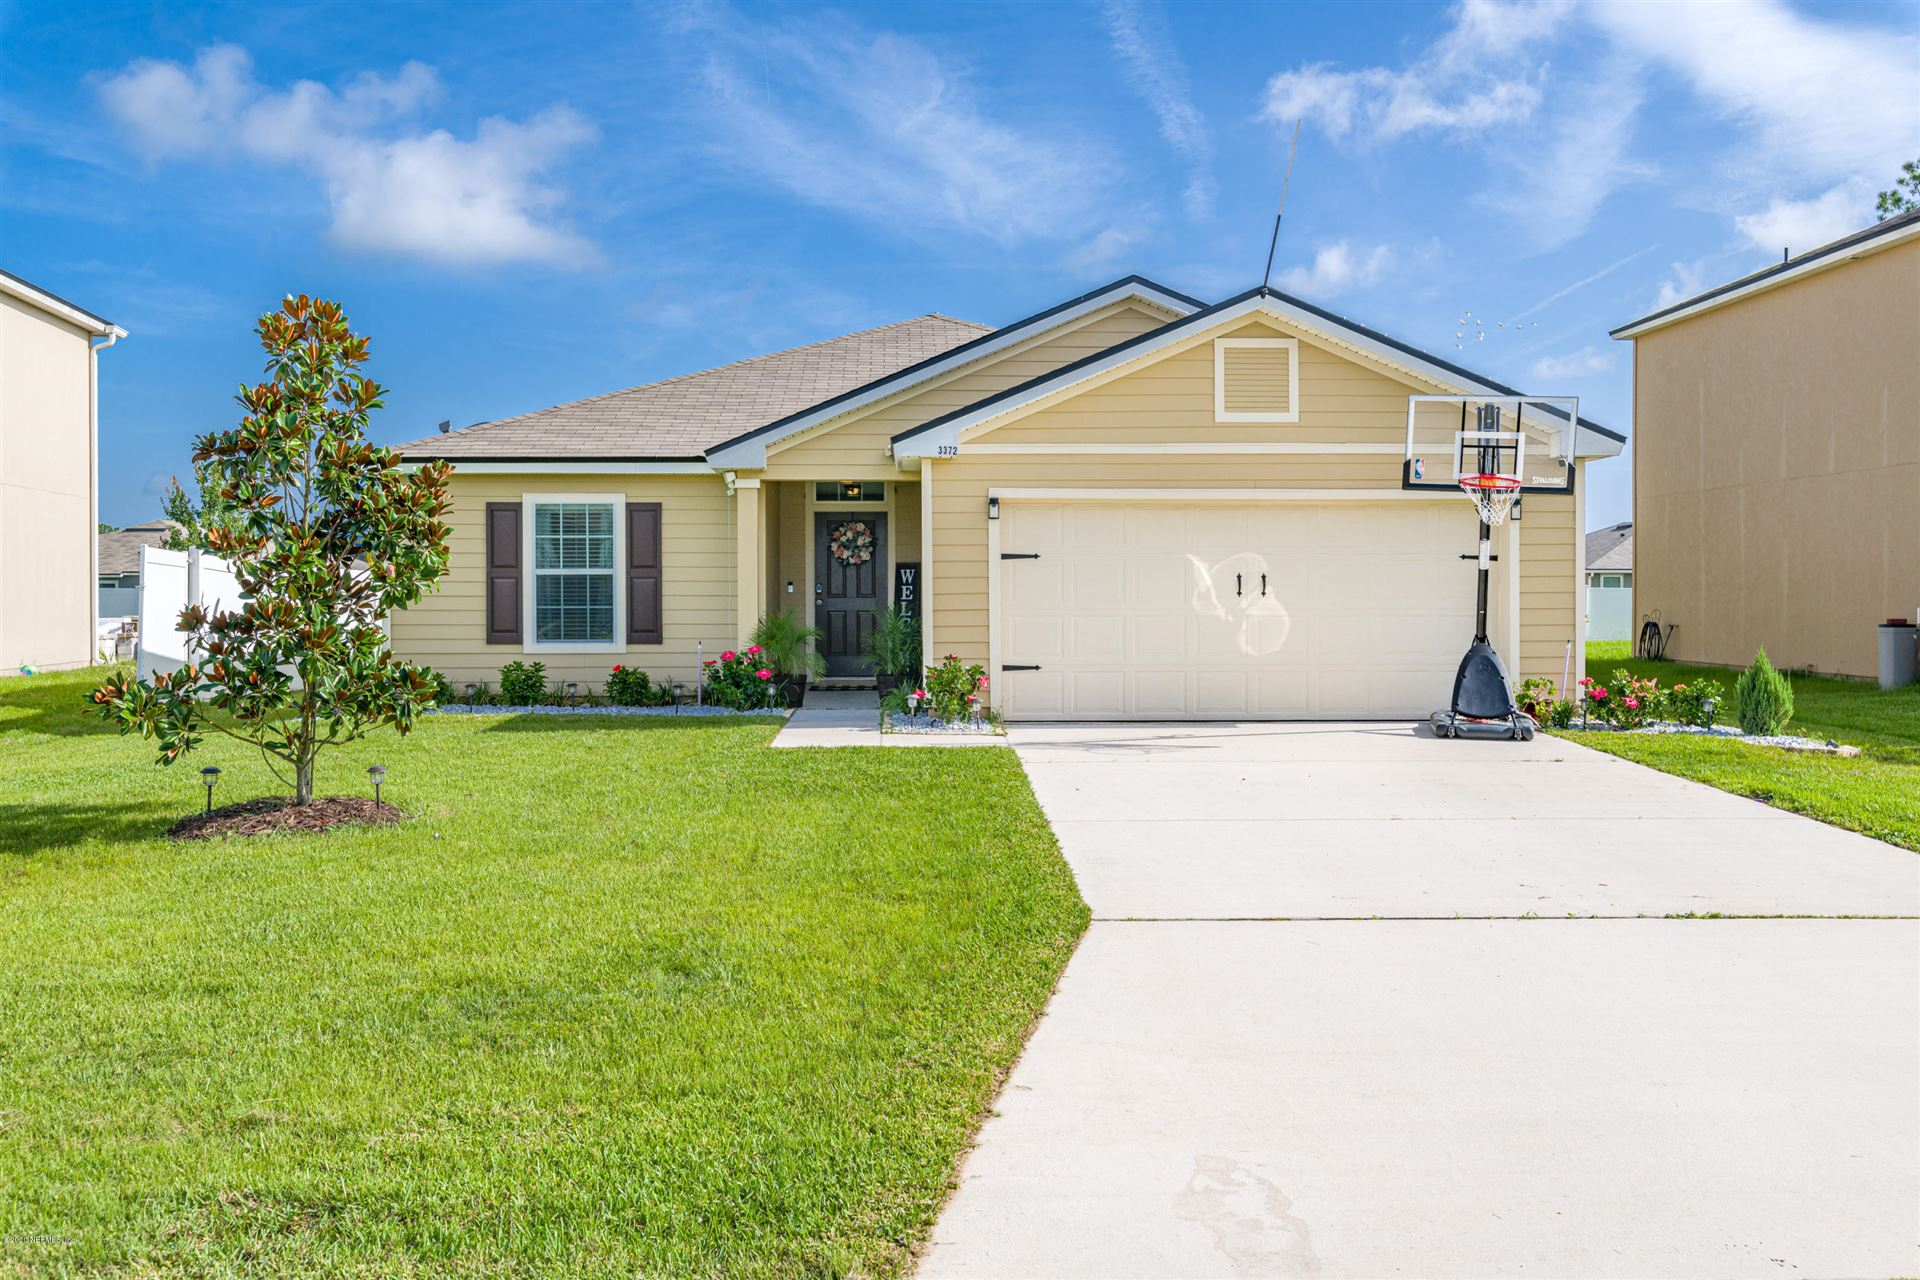 Photo for 3372 CANYON FALLS DR, GREEN COVE SPRINGS, FL 32043 (MLS # 1066563)